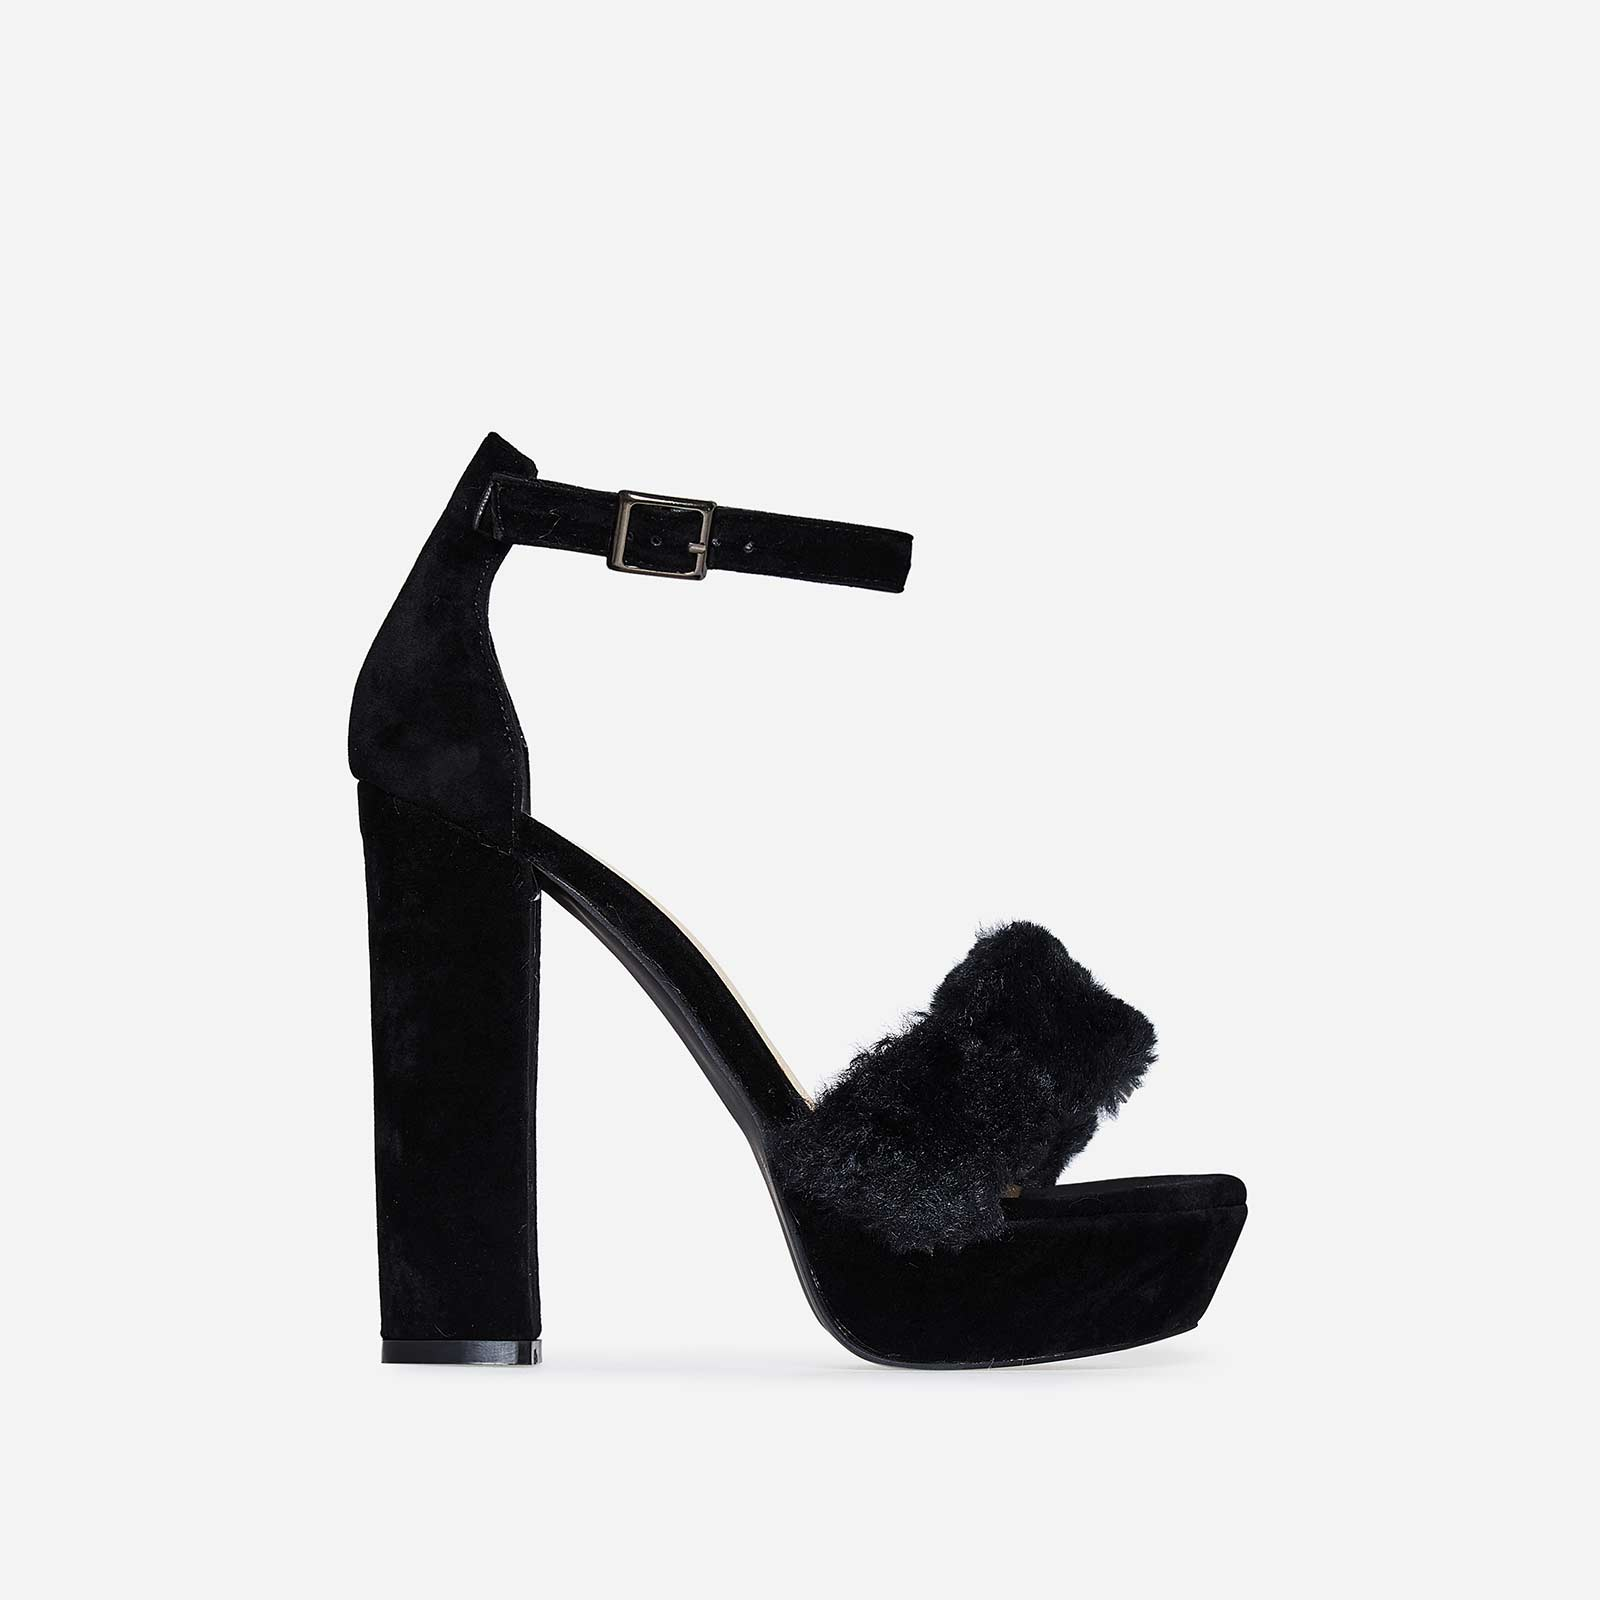 Avril Faux Fur Platform Heel In Black Faux Suede